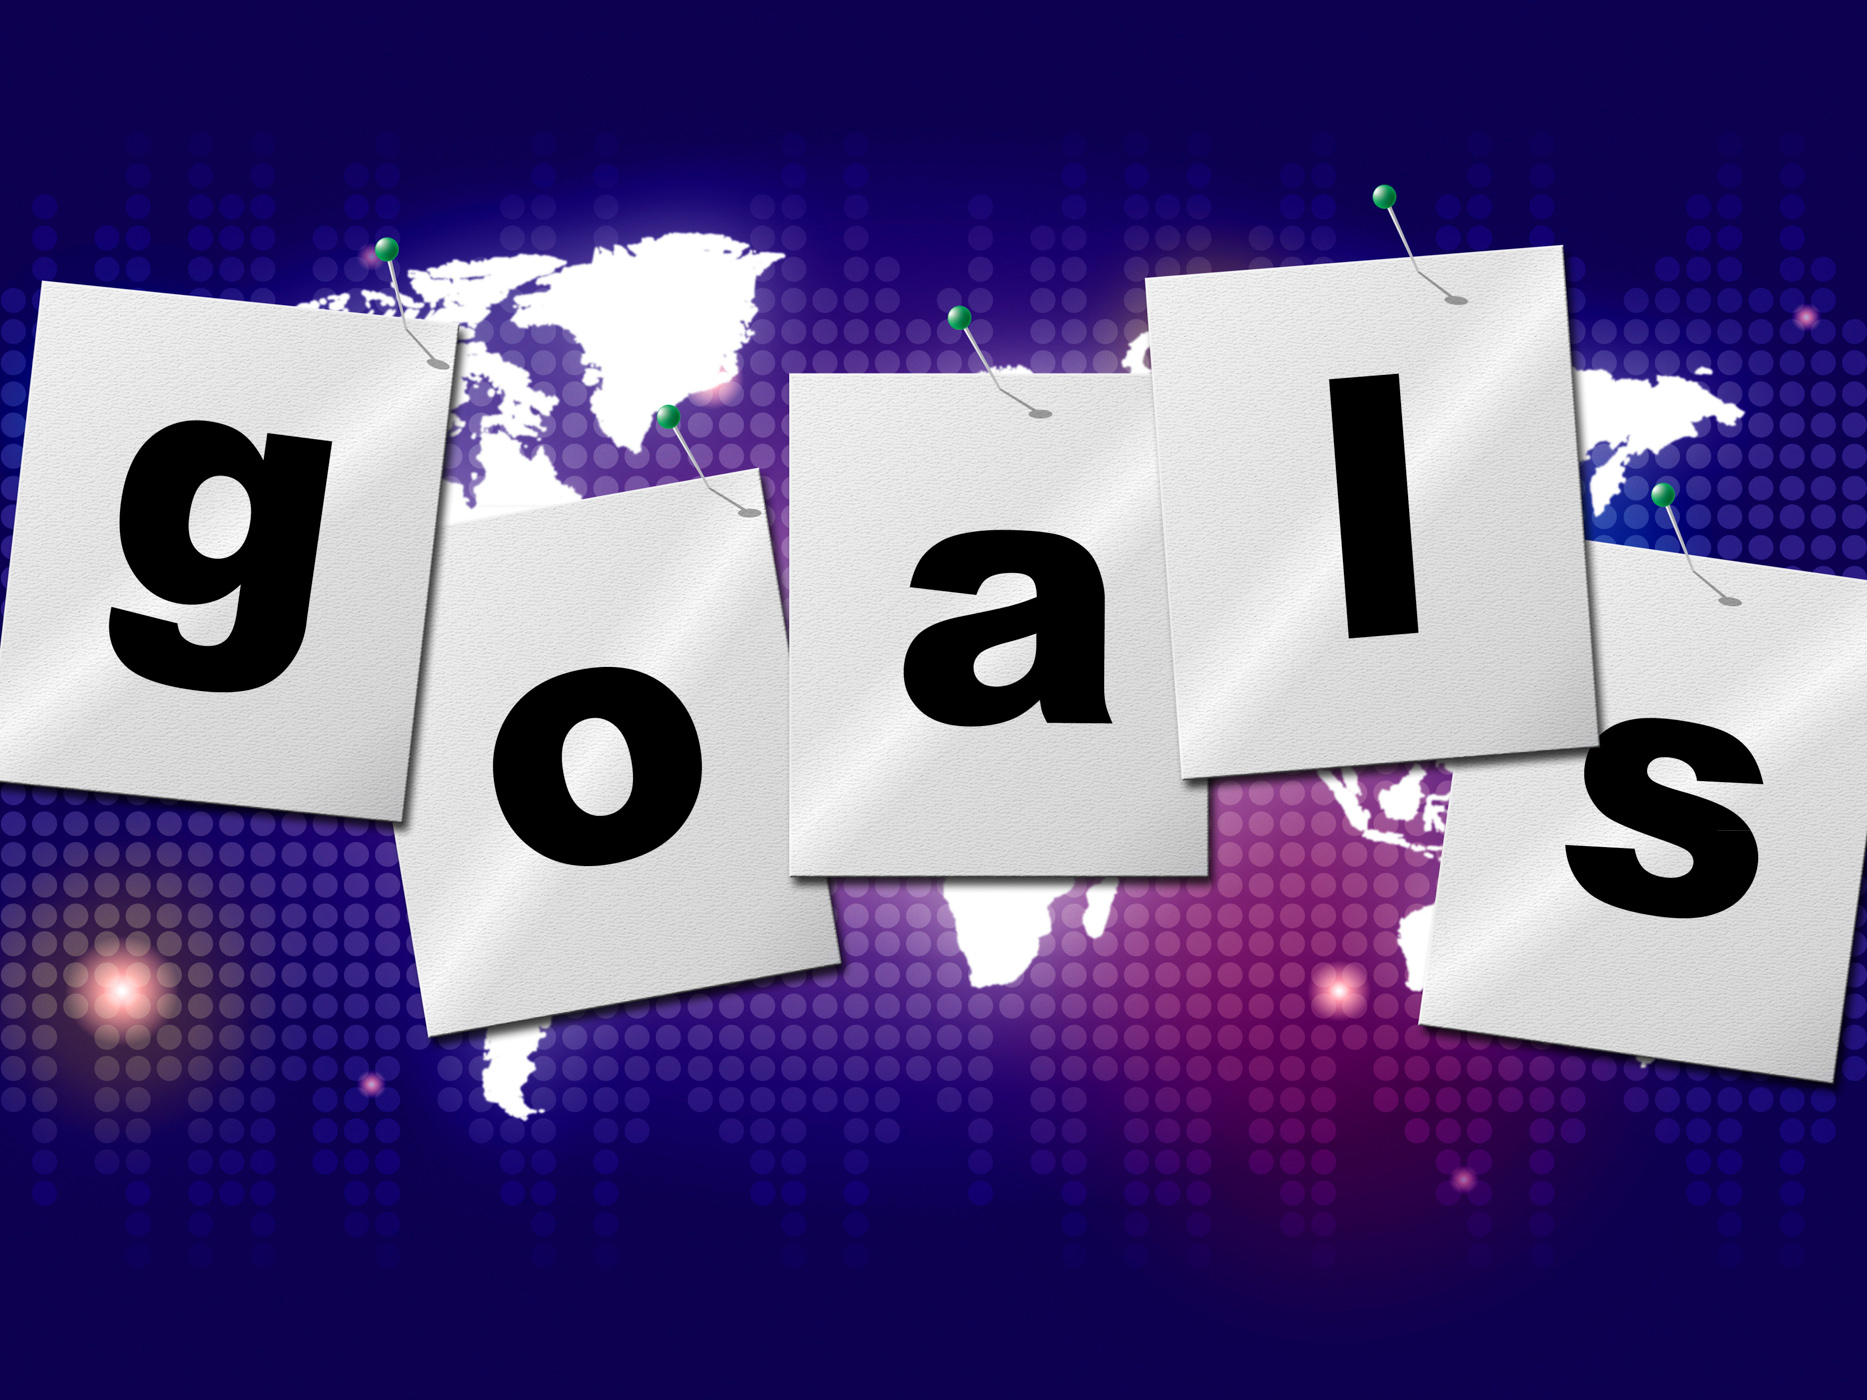 Goals targets indicates aspirations objectives and forecast photo